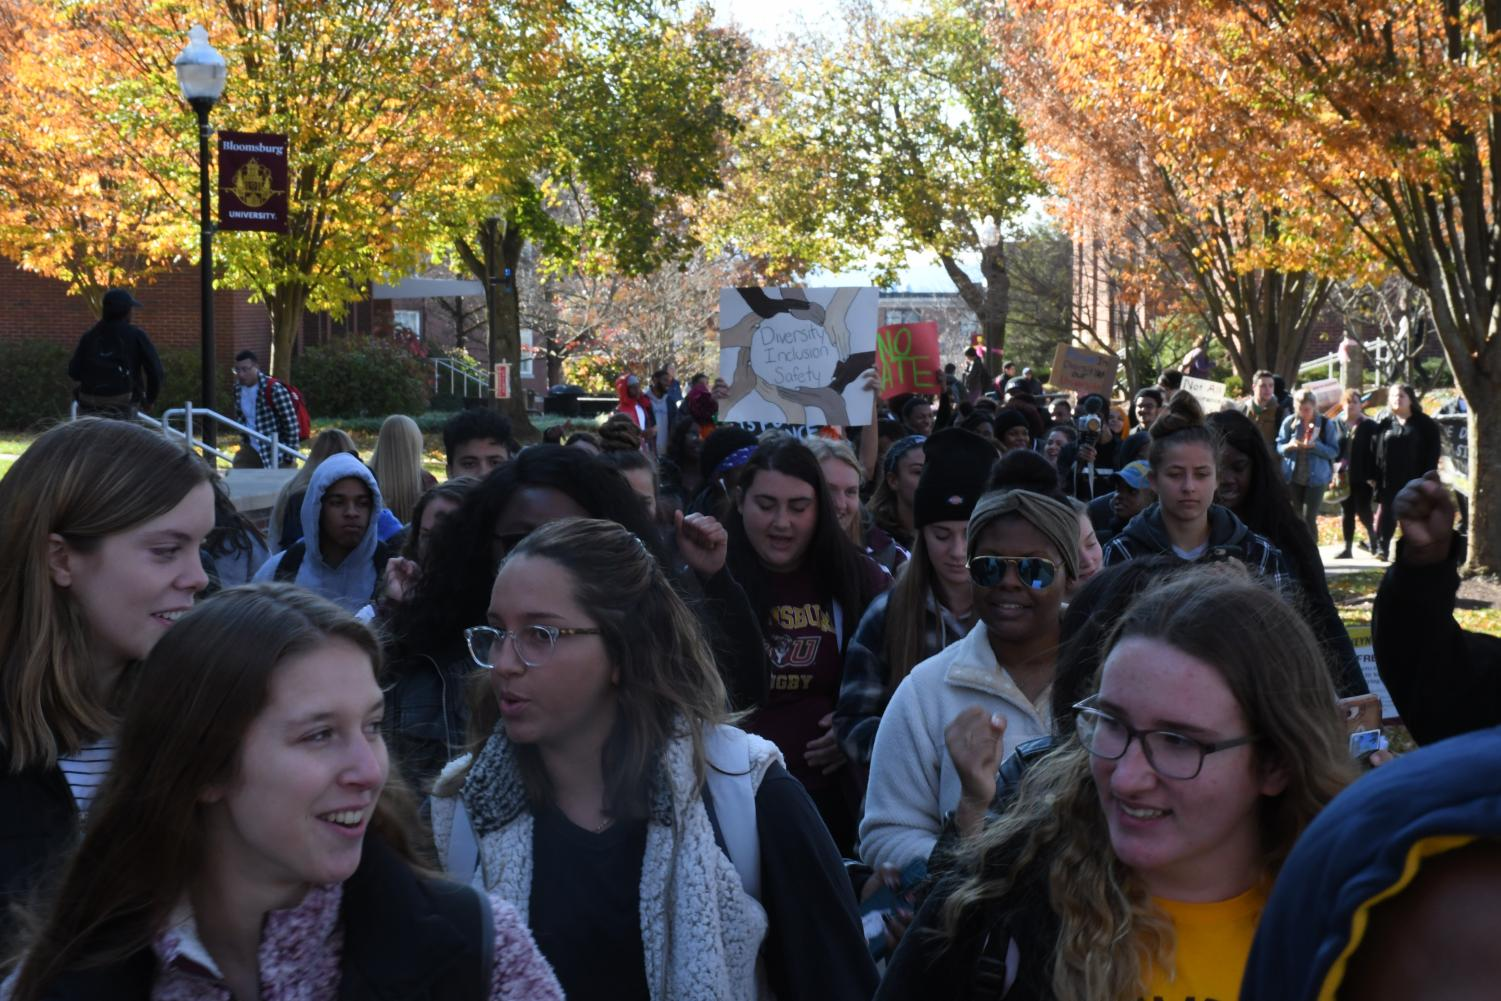 """The protest that took place on the quad had an attendance reported in the thousands per the Press Enterprise. The protest had multiple campus leaders talk through a bullhorn. After the speeches concluded, the protesters circled the quad chanting, """"we want D.I.S."""" D.I.S. stands for diversity, inclusion and safety. After multiple passes around the quad, the march continued down to Carver Hall where the speeches continued."""